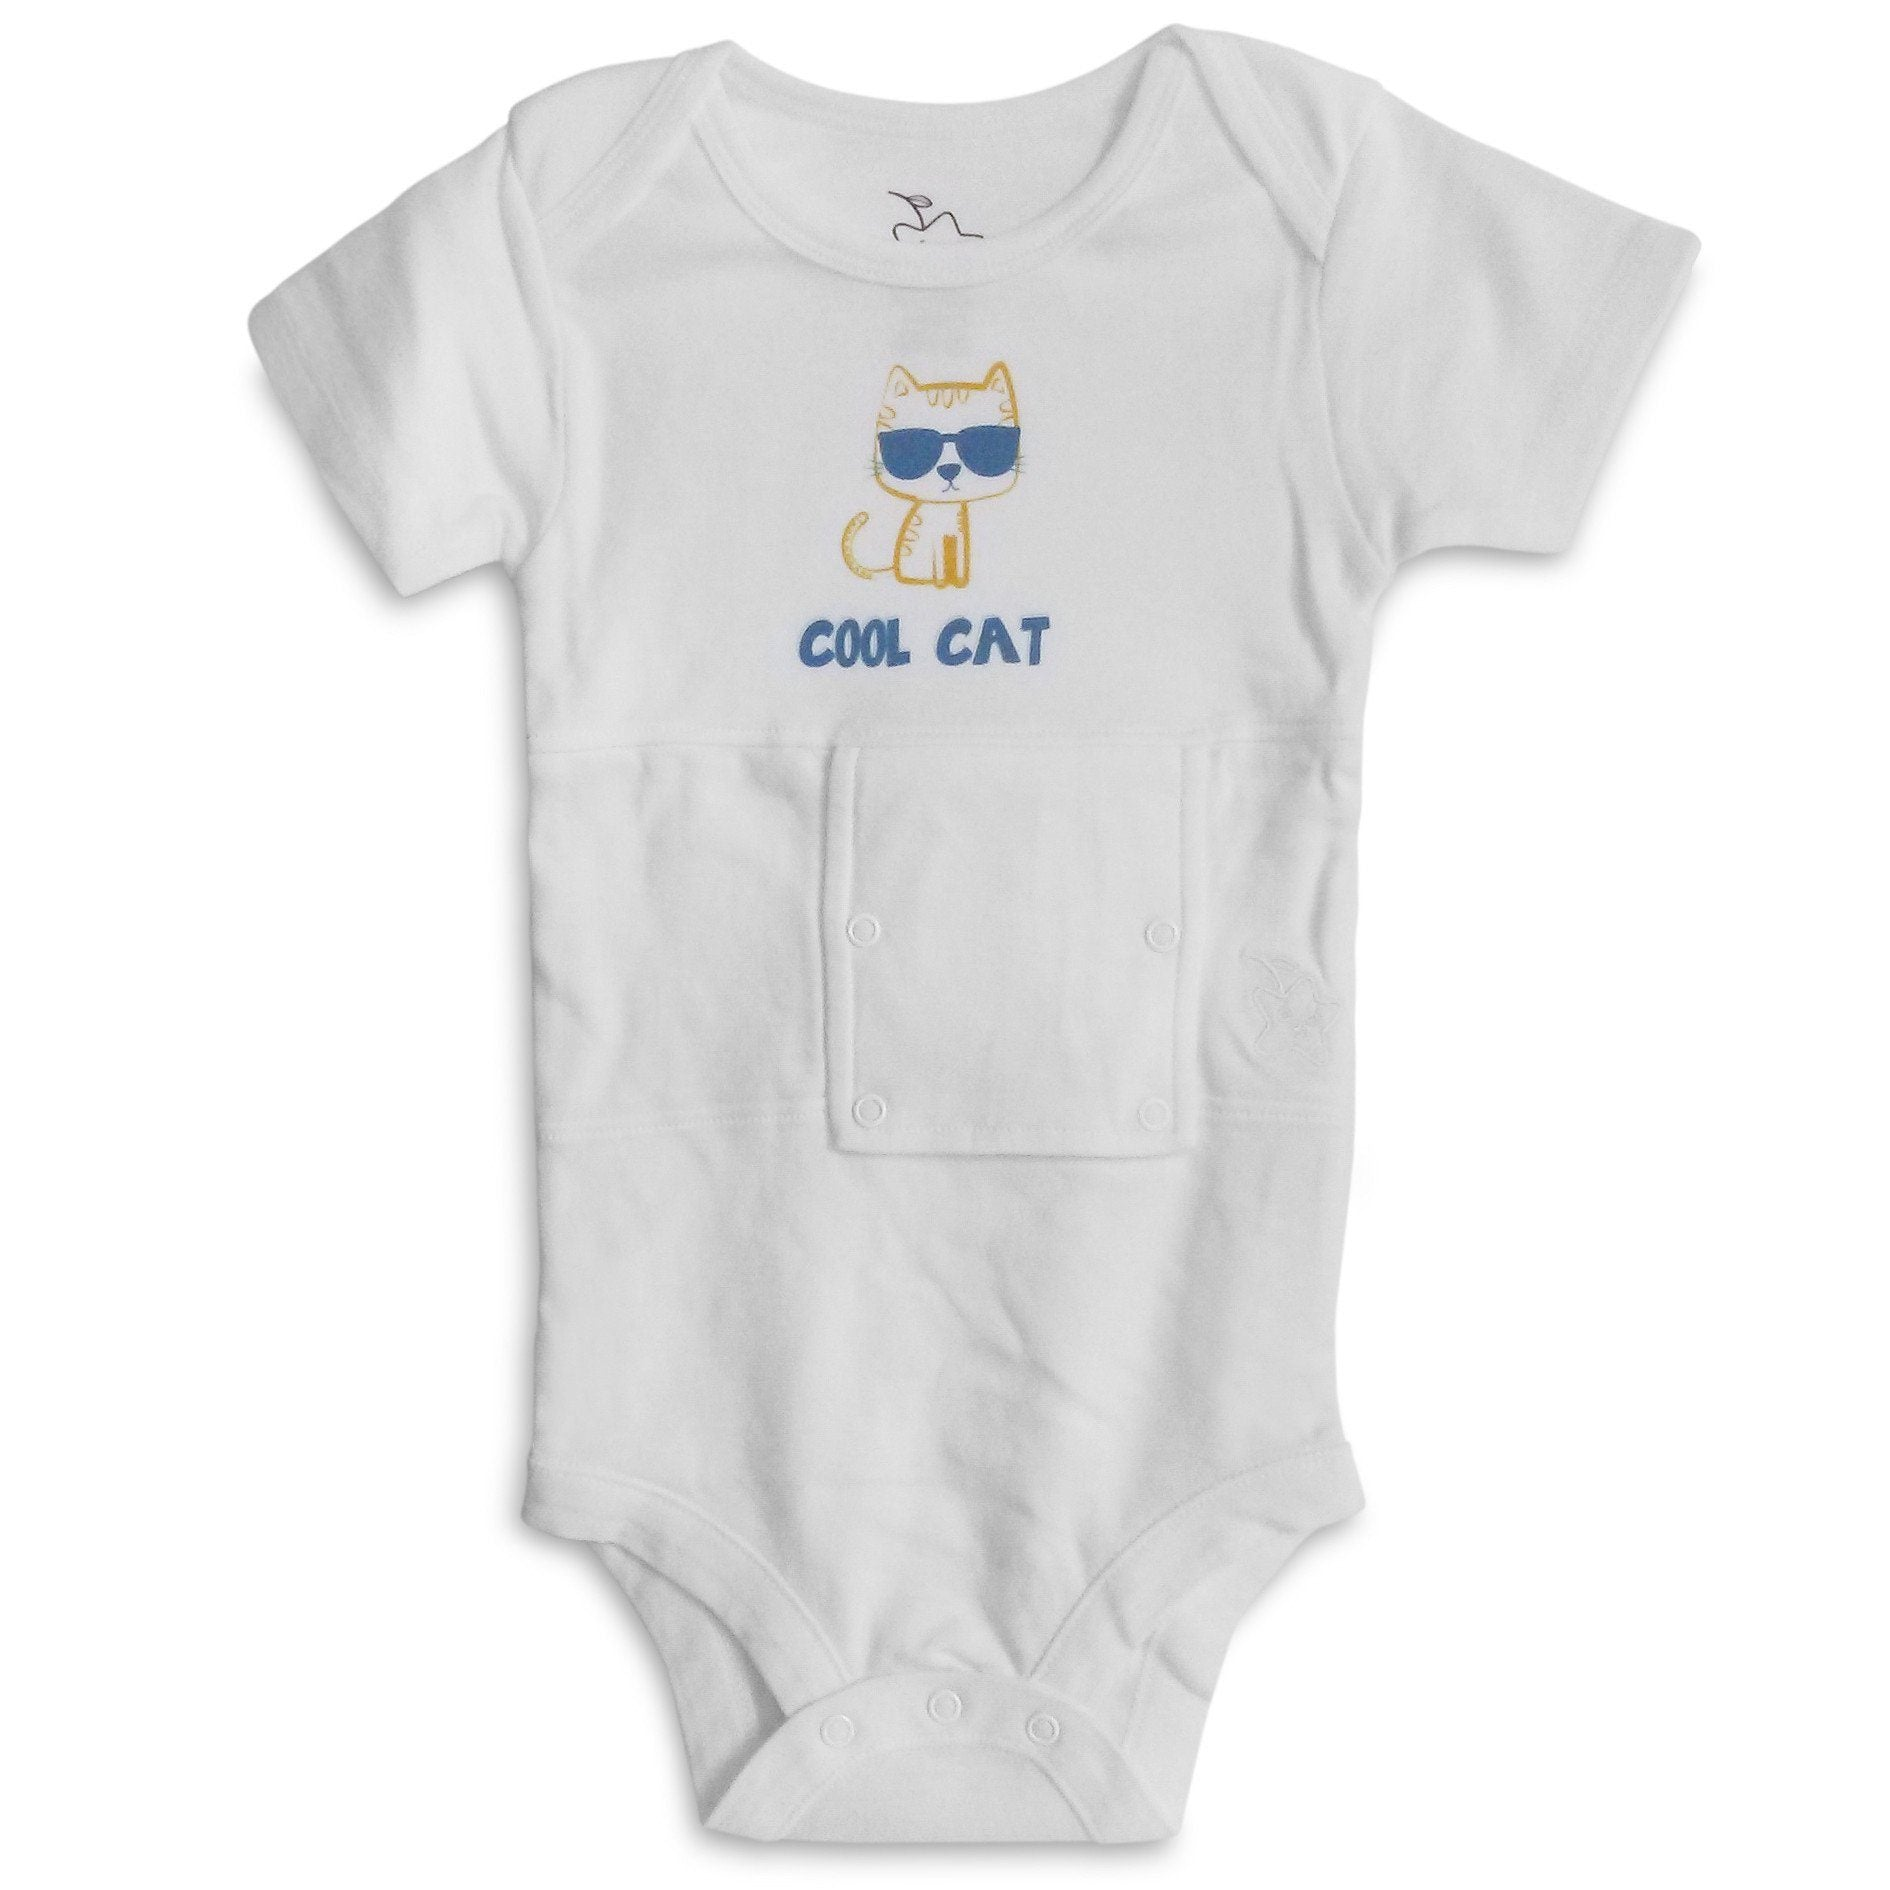 Cool-Cat Feeding Tube Onesie